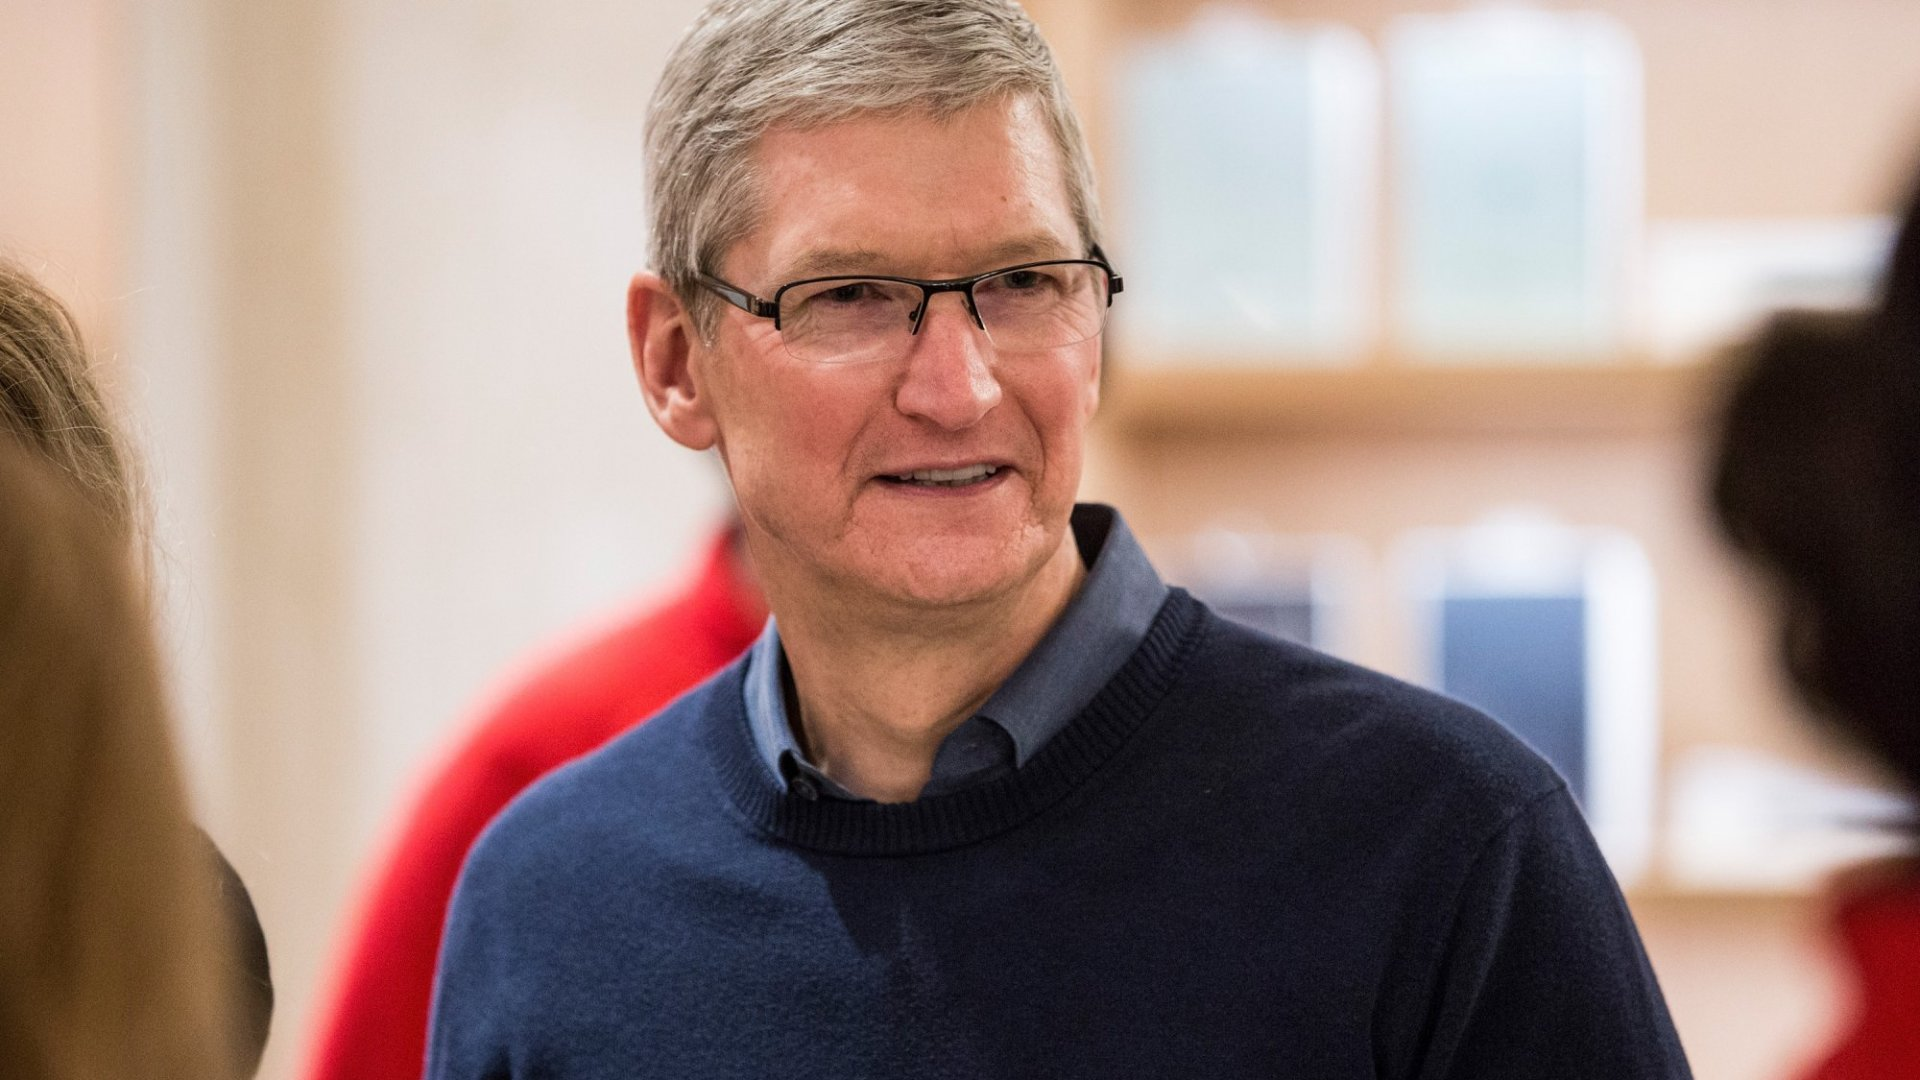 Has Apple Become the New Old Microsoft?